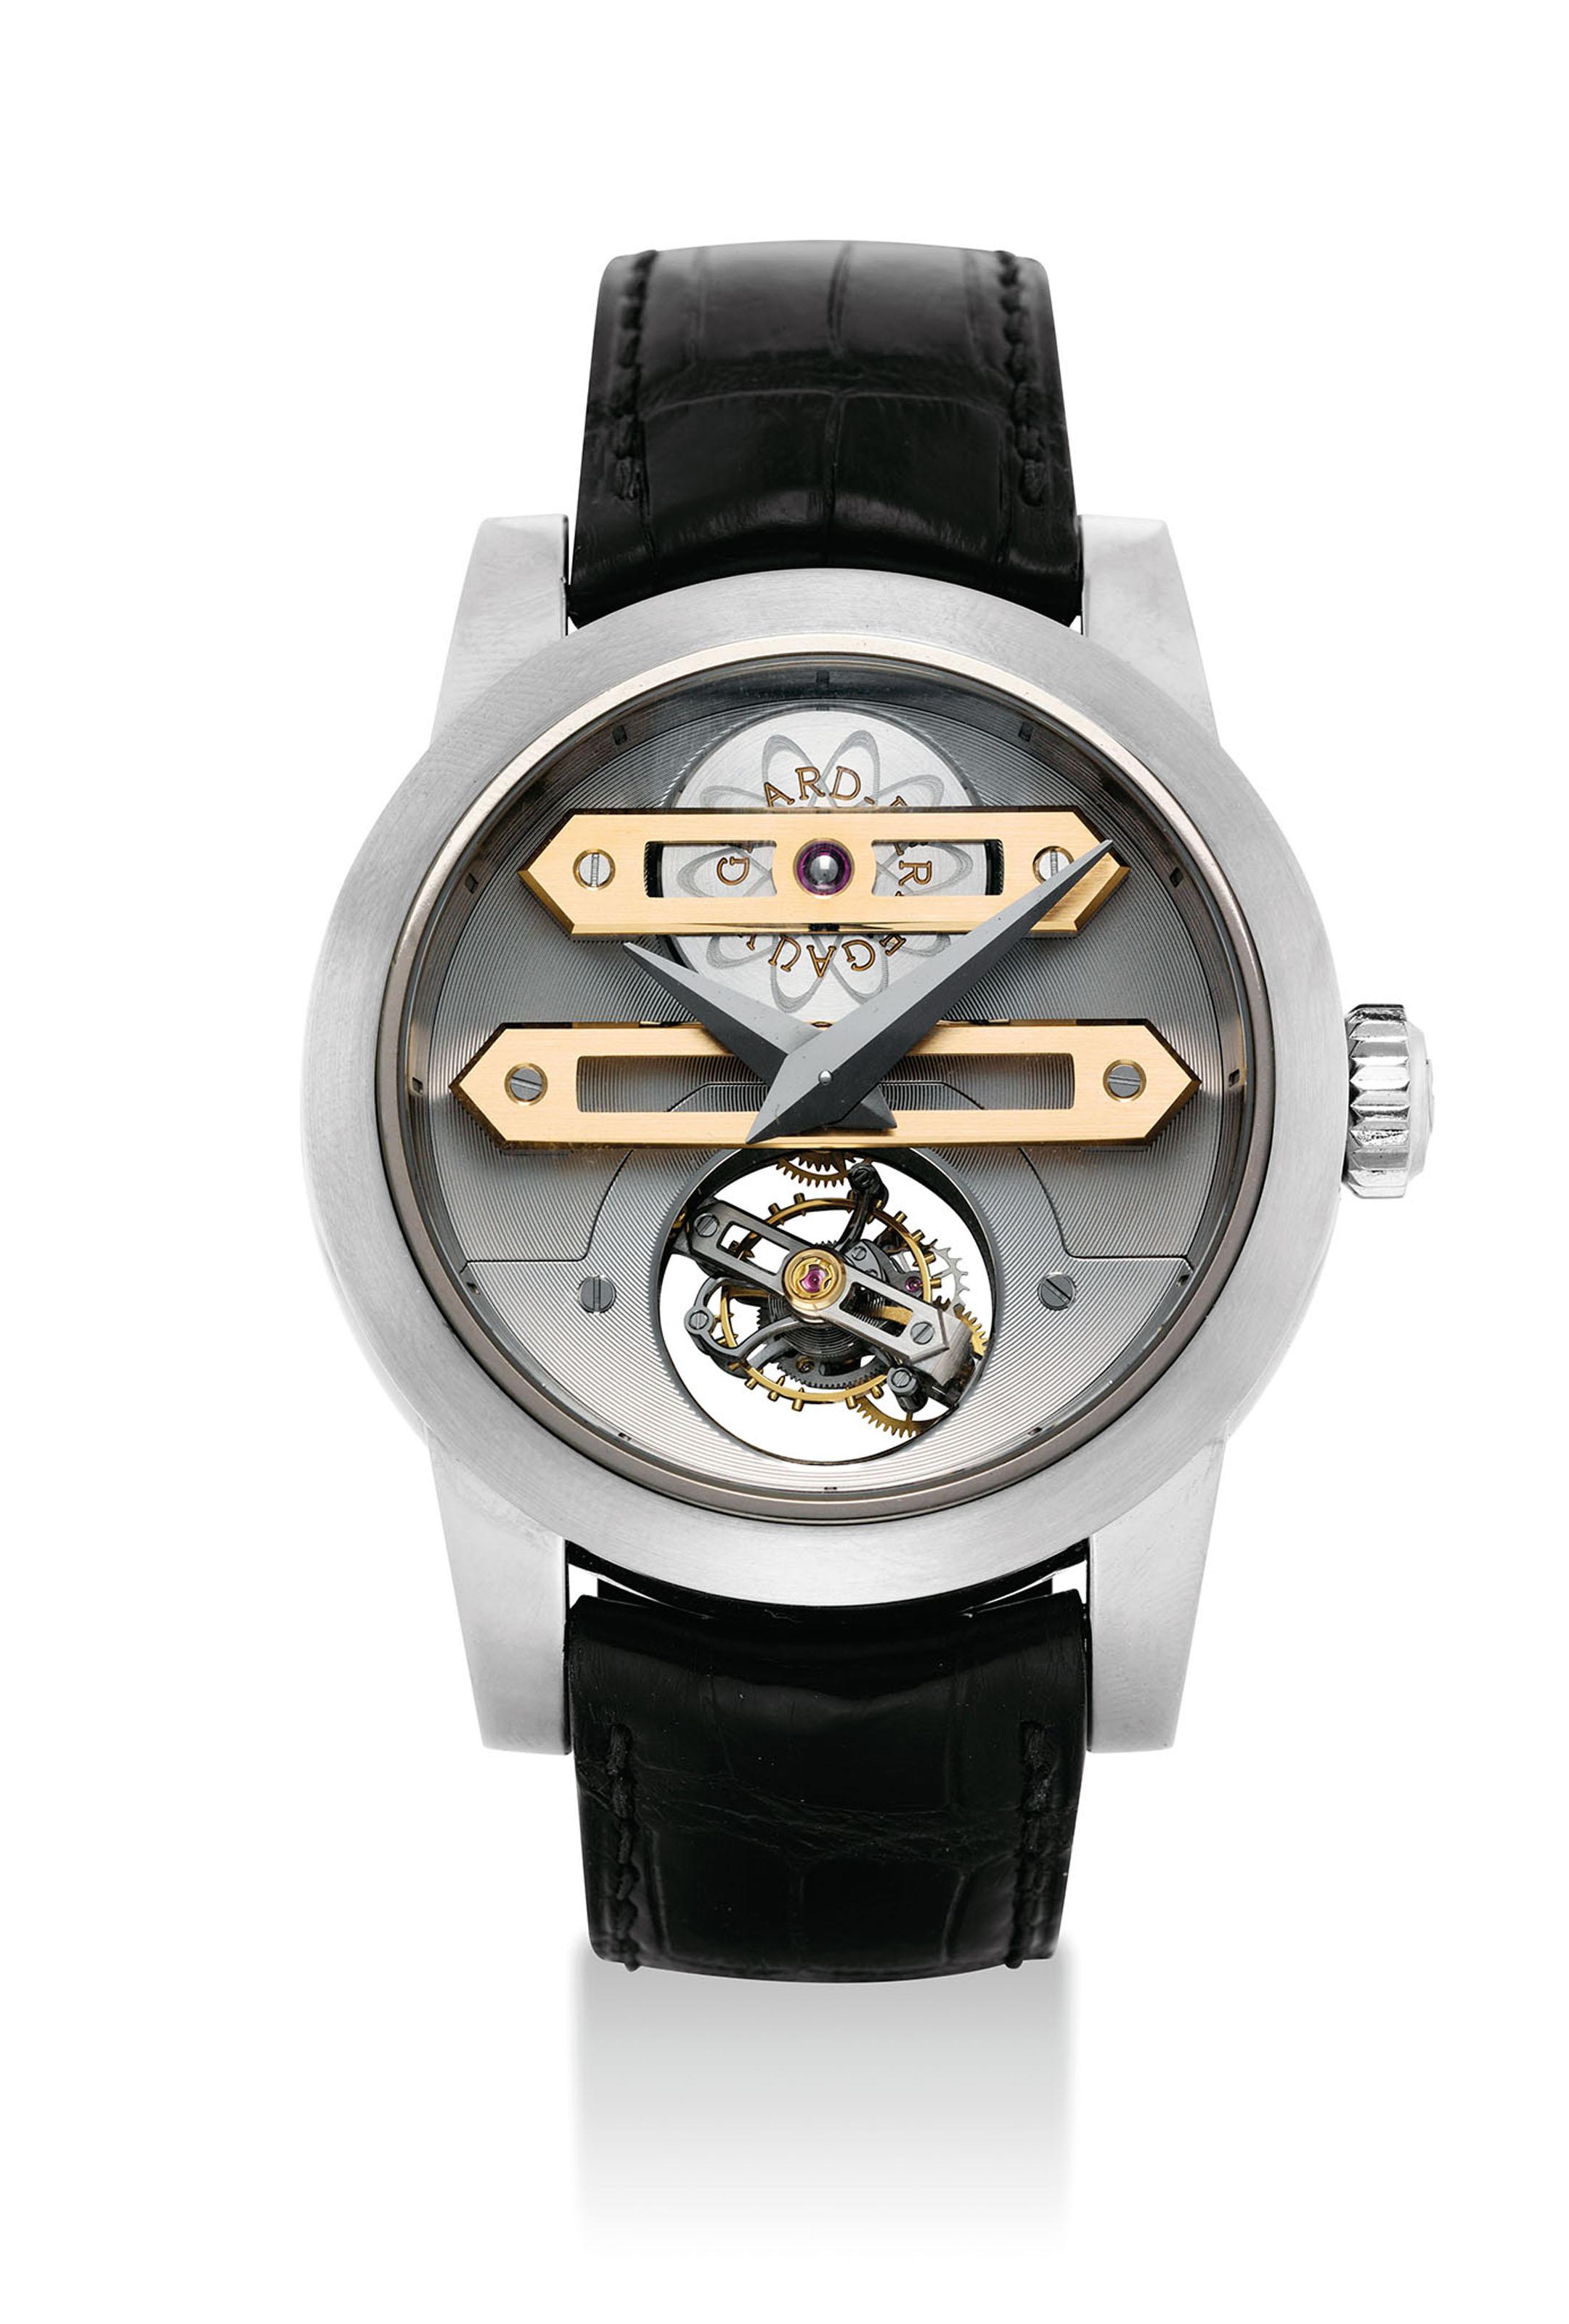 GIRARD-PERREGAUX. A FINE, OVERSIZED AND VERY RARE 18K WHITE GOLD LIMITED EDITION BI-AXIAL TOURBILLON WRISTWATCH WITH ORIGINAL CERTIFICATE AND BOX